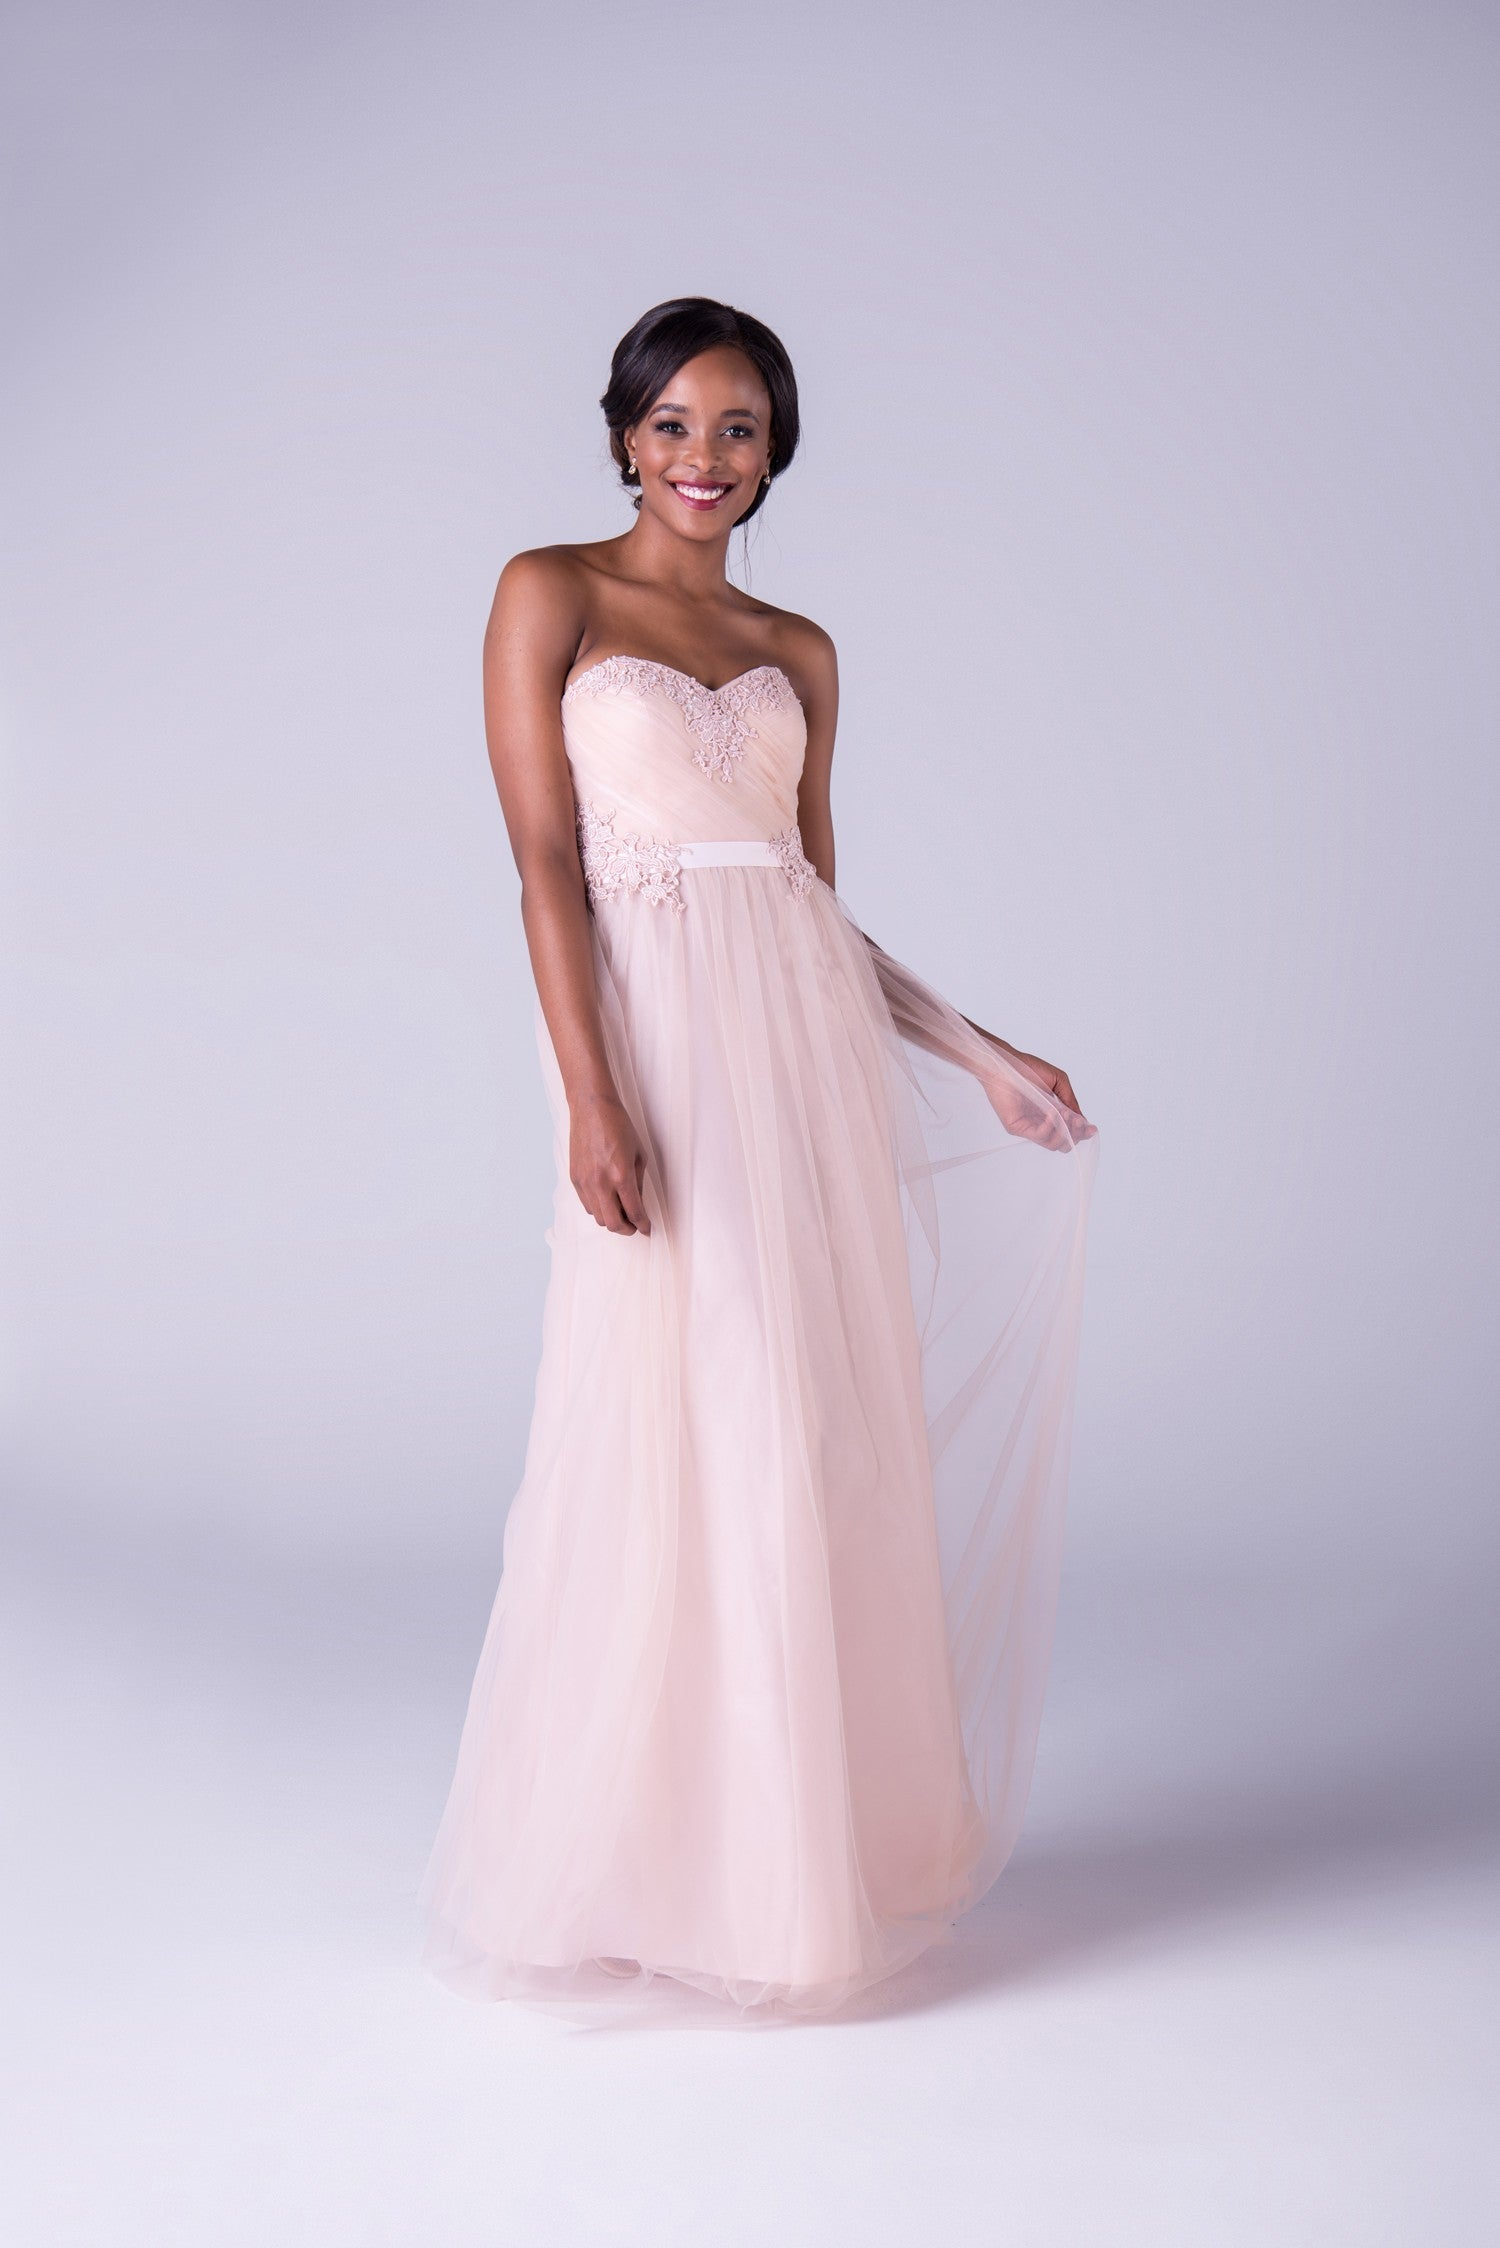 A-line tulle gown with lace detailing-wbm1187